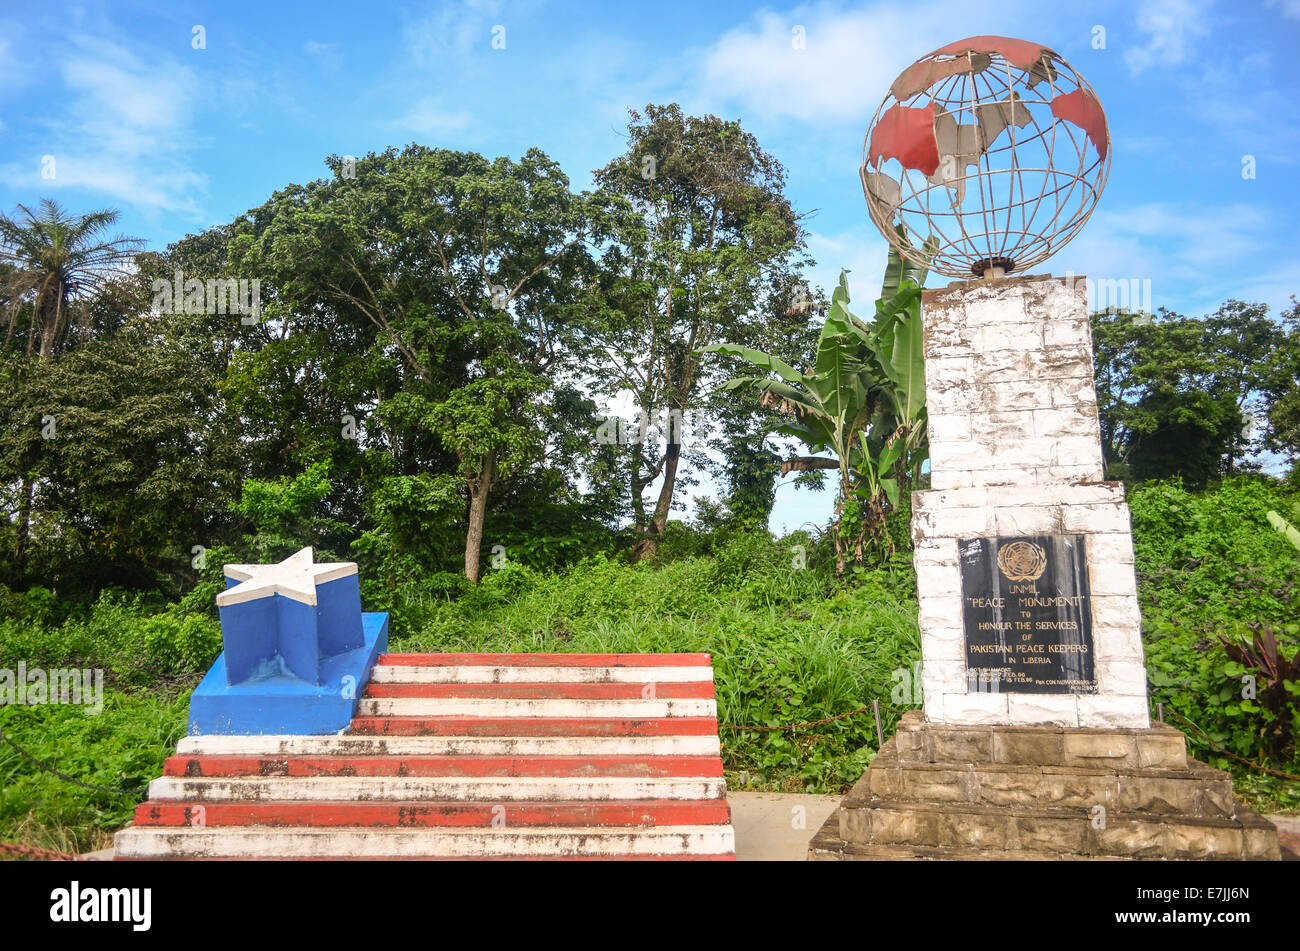 Memorial to the Pakistani UN (United Nations) peace keeping forces (UNMIL) in Liberia - Stock Image